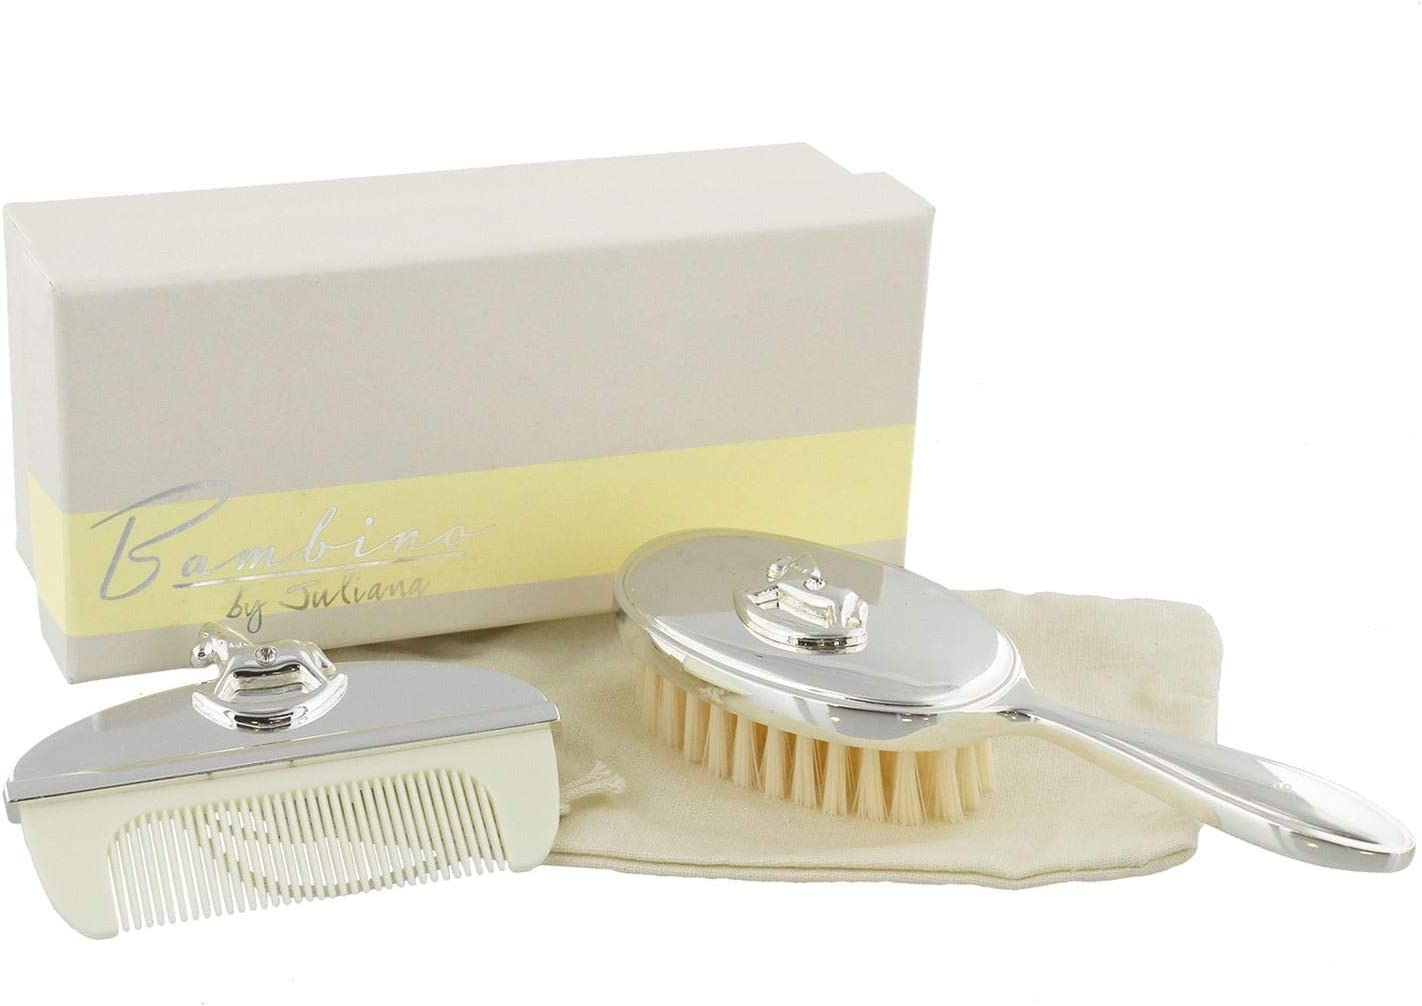 Delivered in a Box with Silver Winnie The Pooh Decoration Set of Brush and Comb Disney Baby Ideal Gift for Babies and Toddlers Essential Baby Accessory